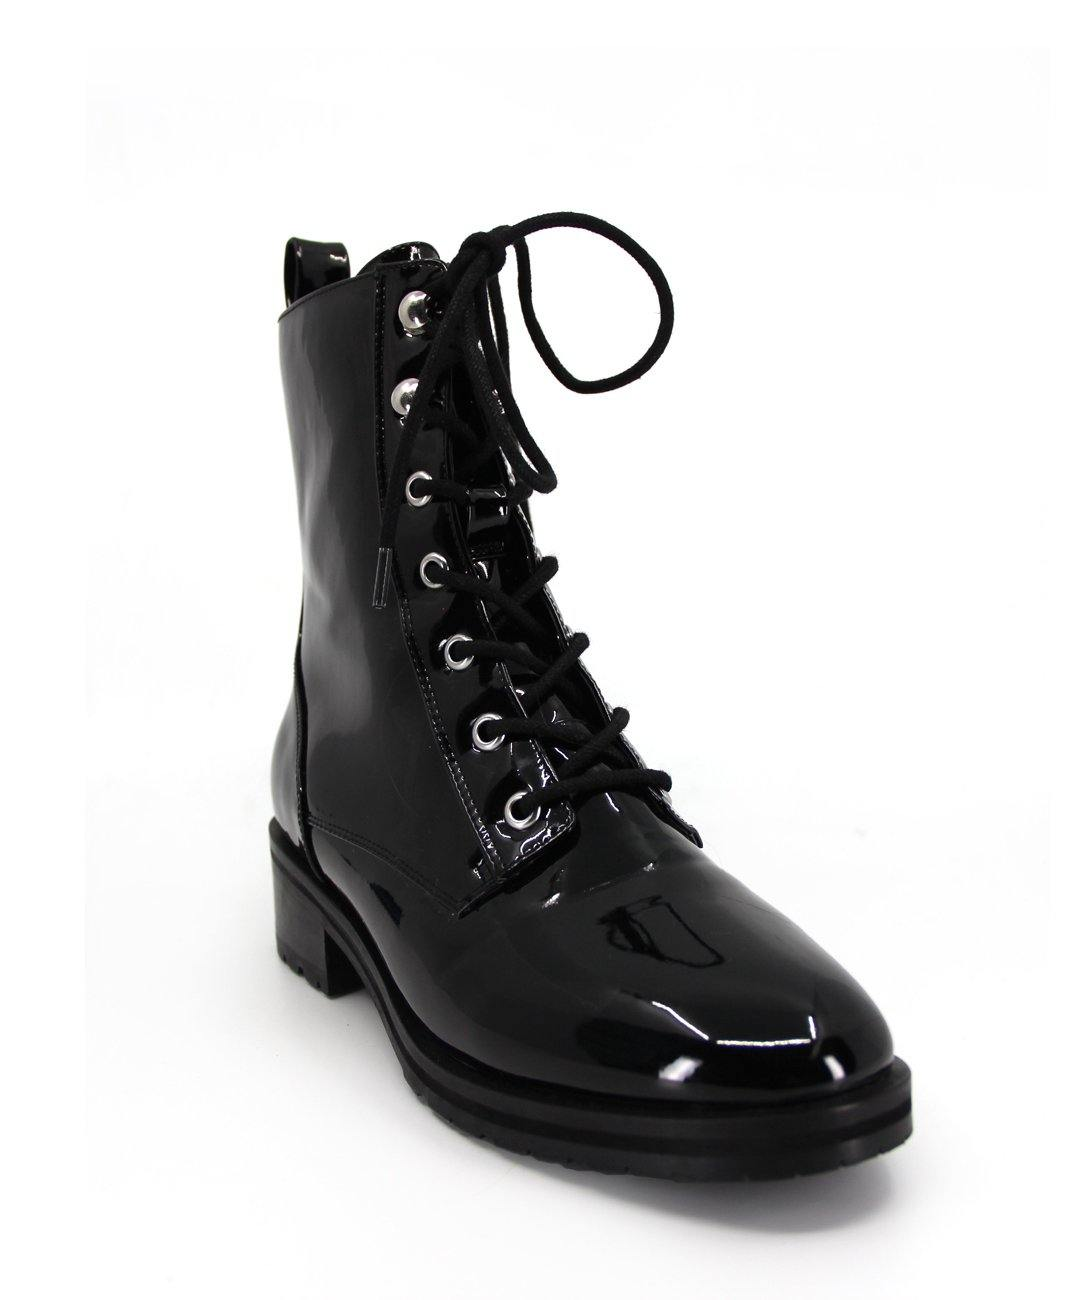 Womens on trend Military style boot in black patent